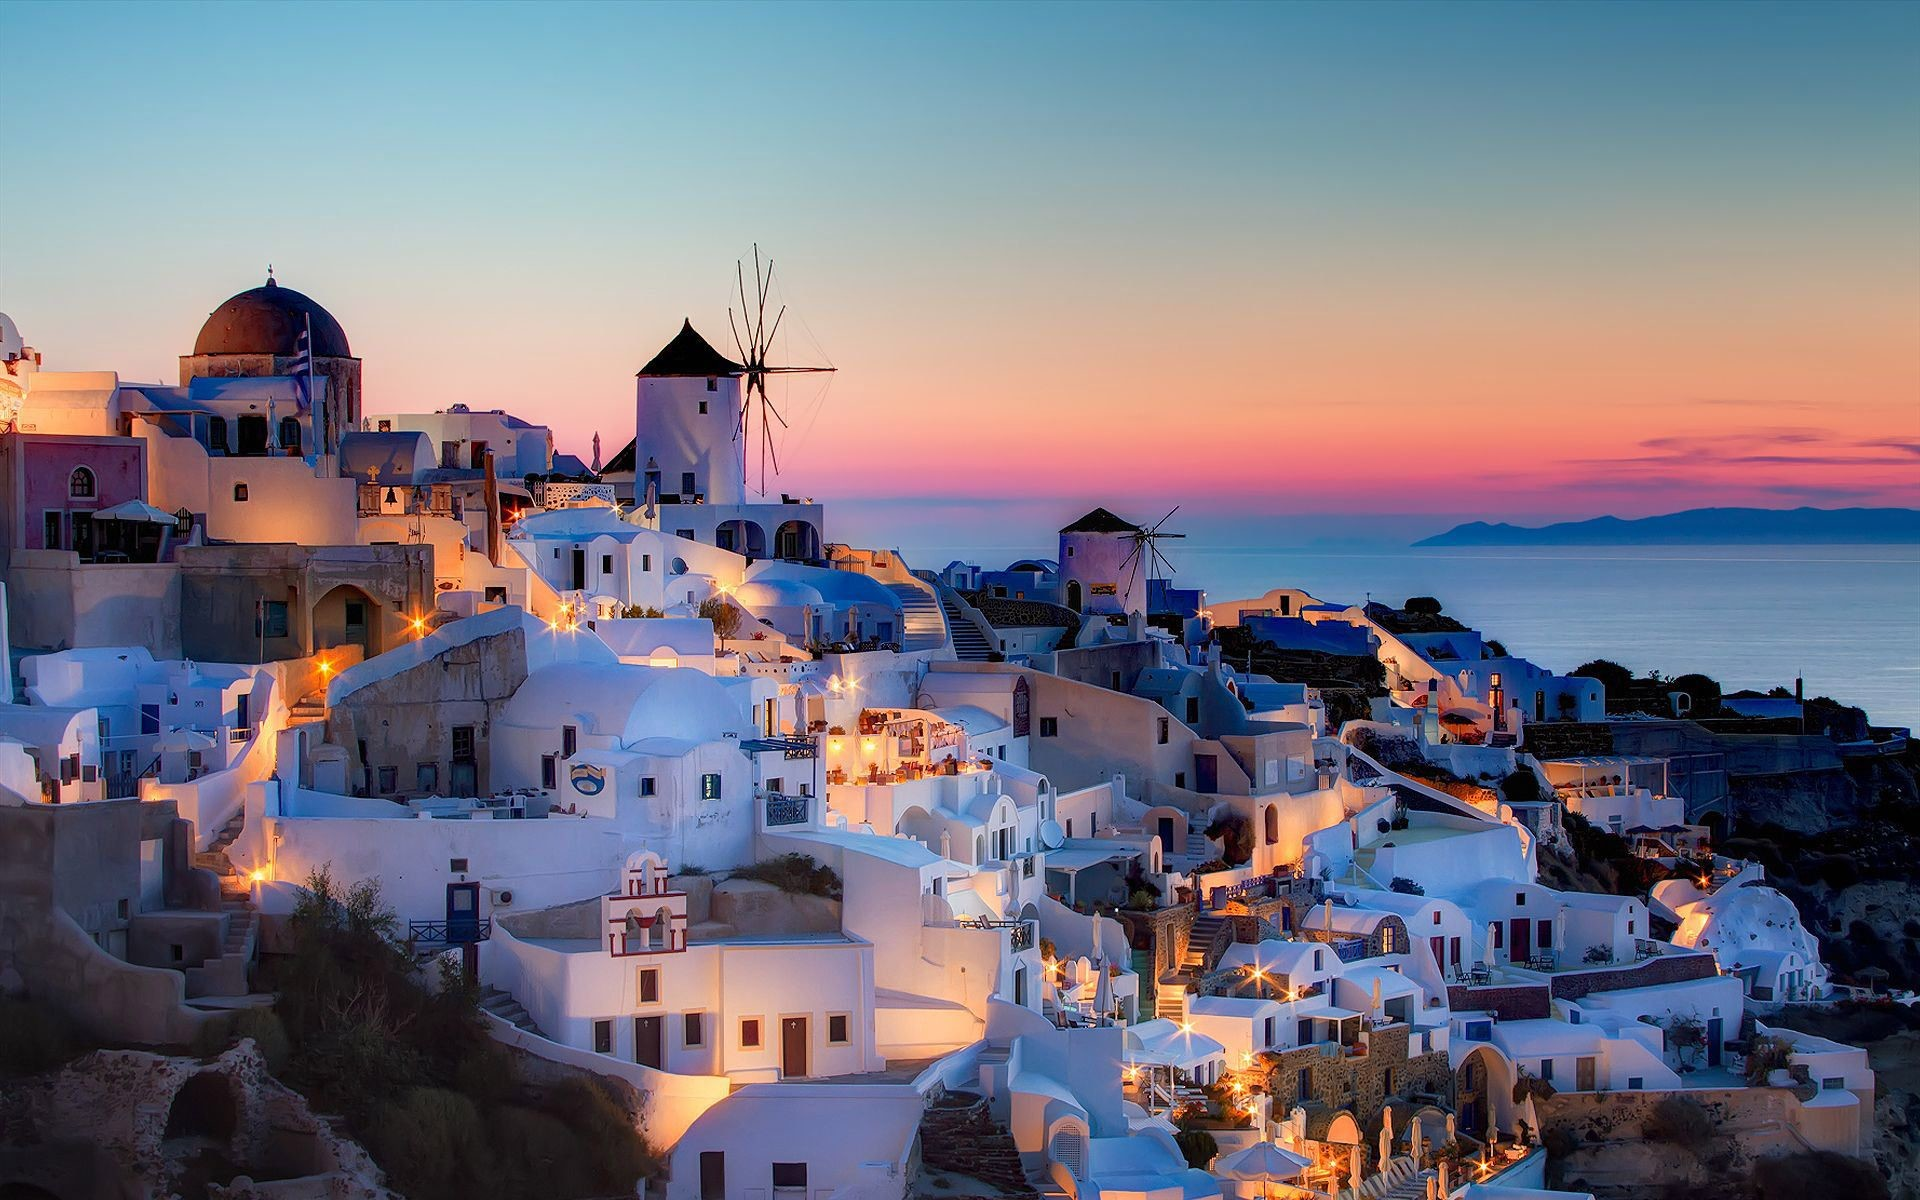 Res: 1920x1200, Greek Wallpapers, Images, Photos, Pictures & Pics #greek #wallpapers